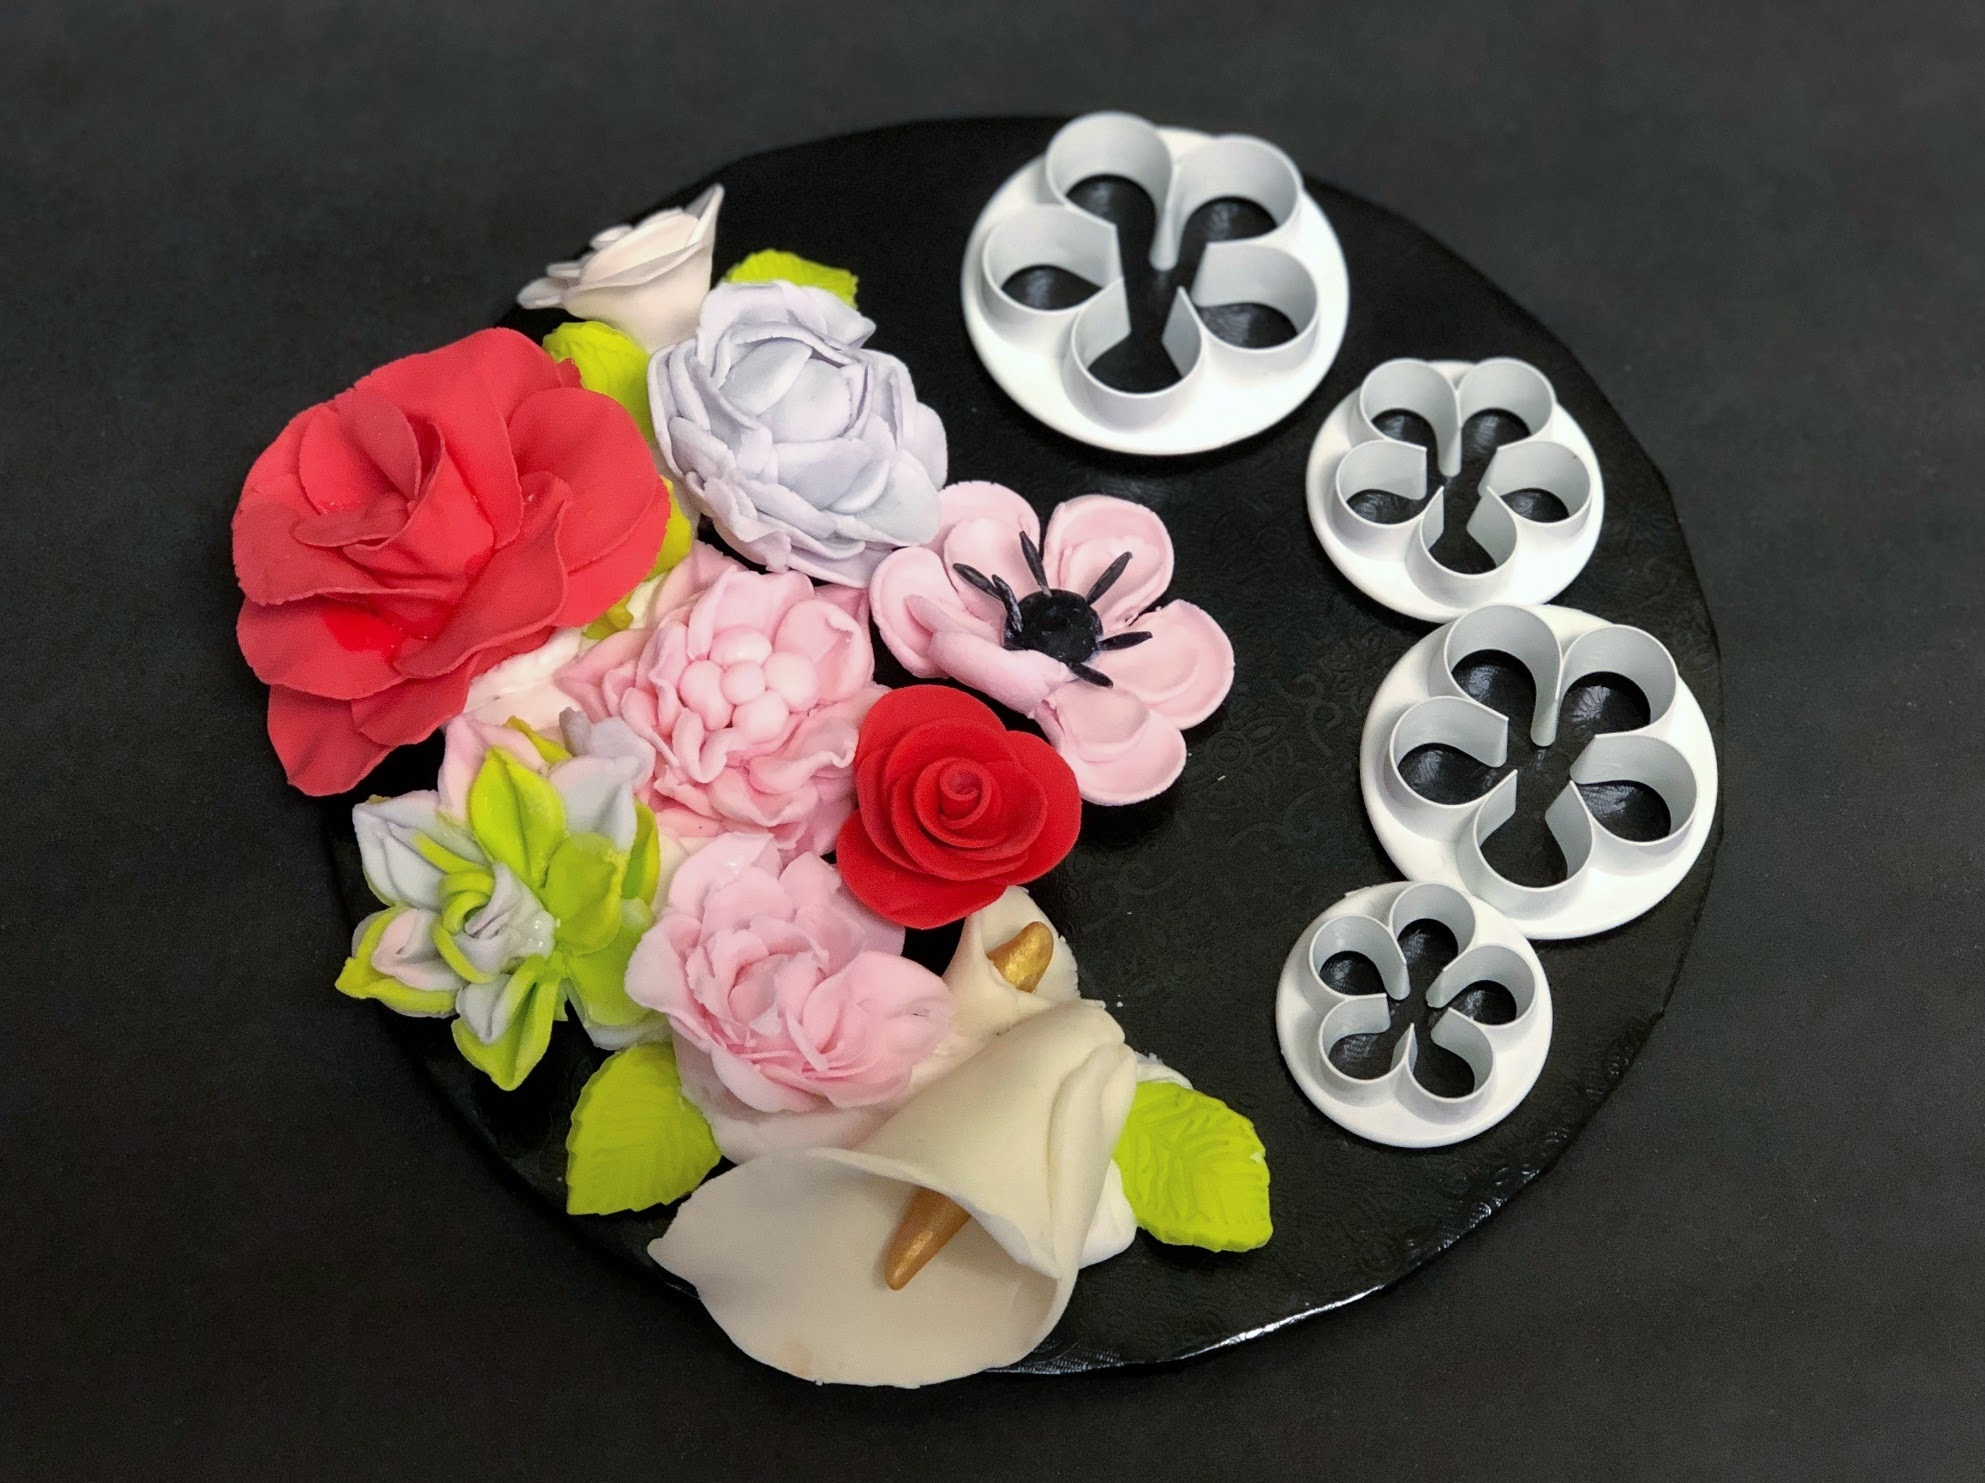 Gum Paste Flower Class (Ages 12 and up)